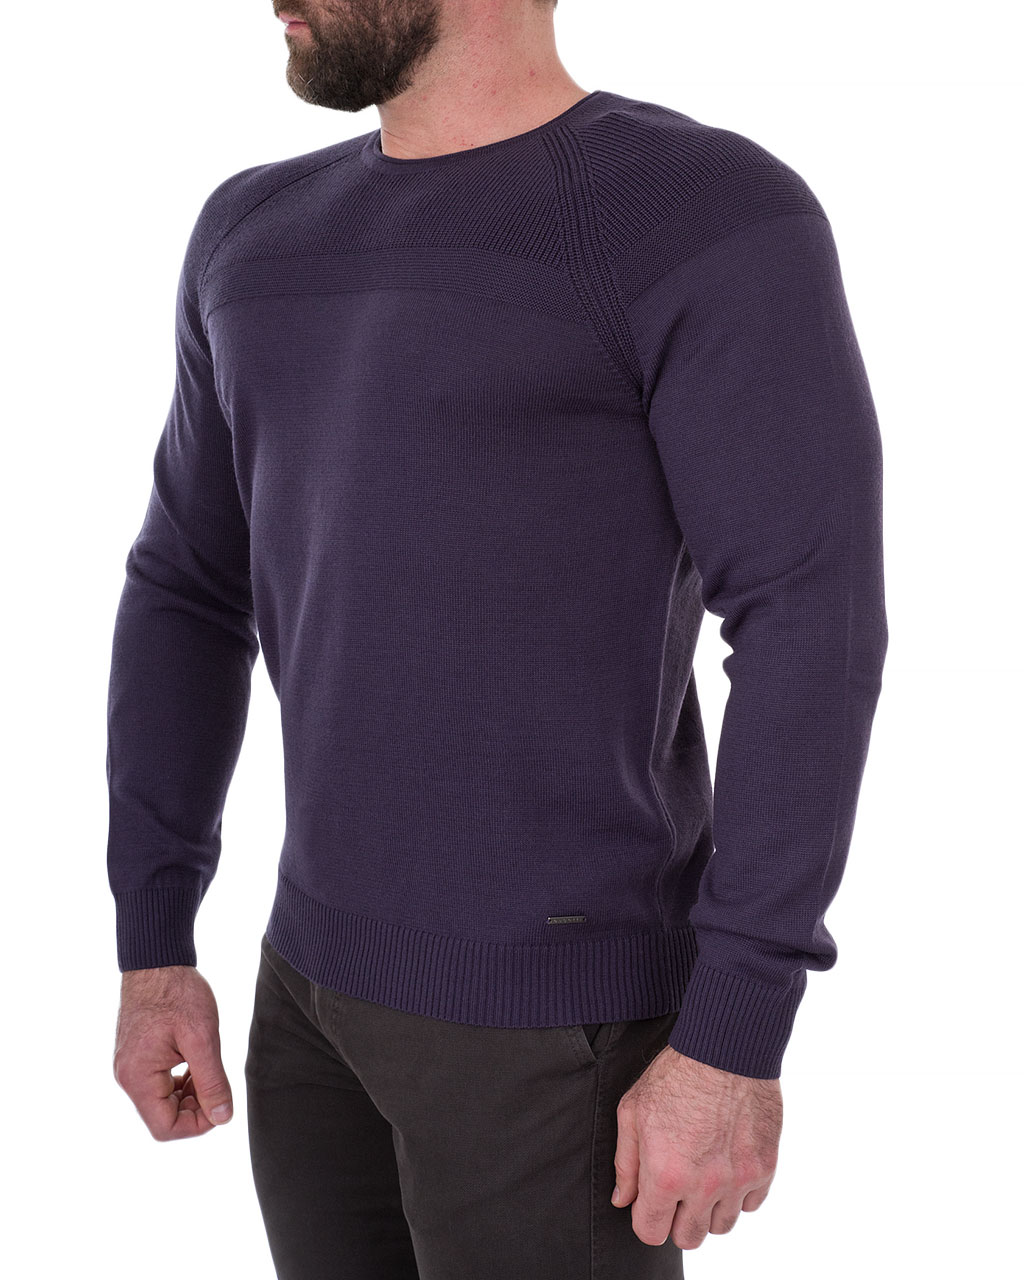 Men's jumper 7450-45532-860/19-20--2 (3)